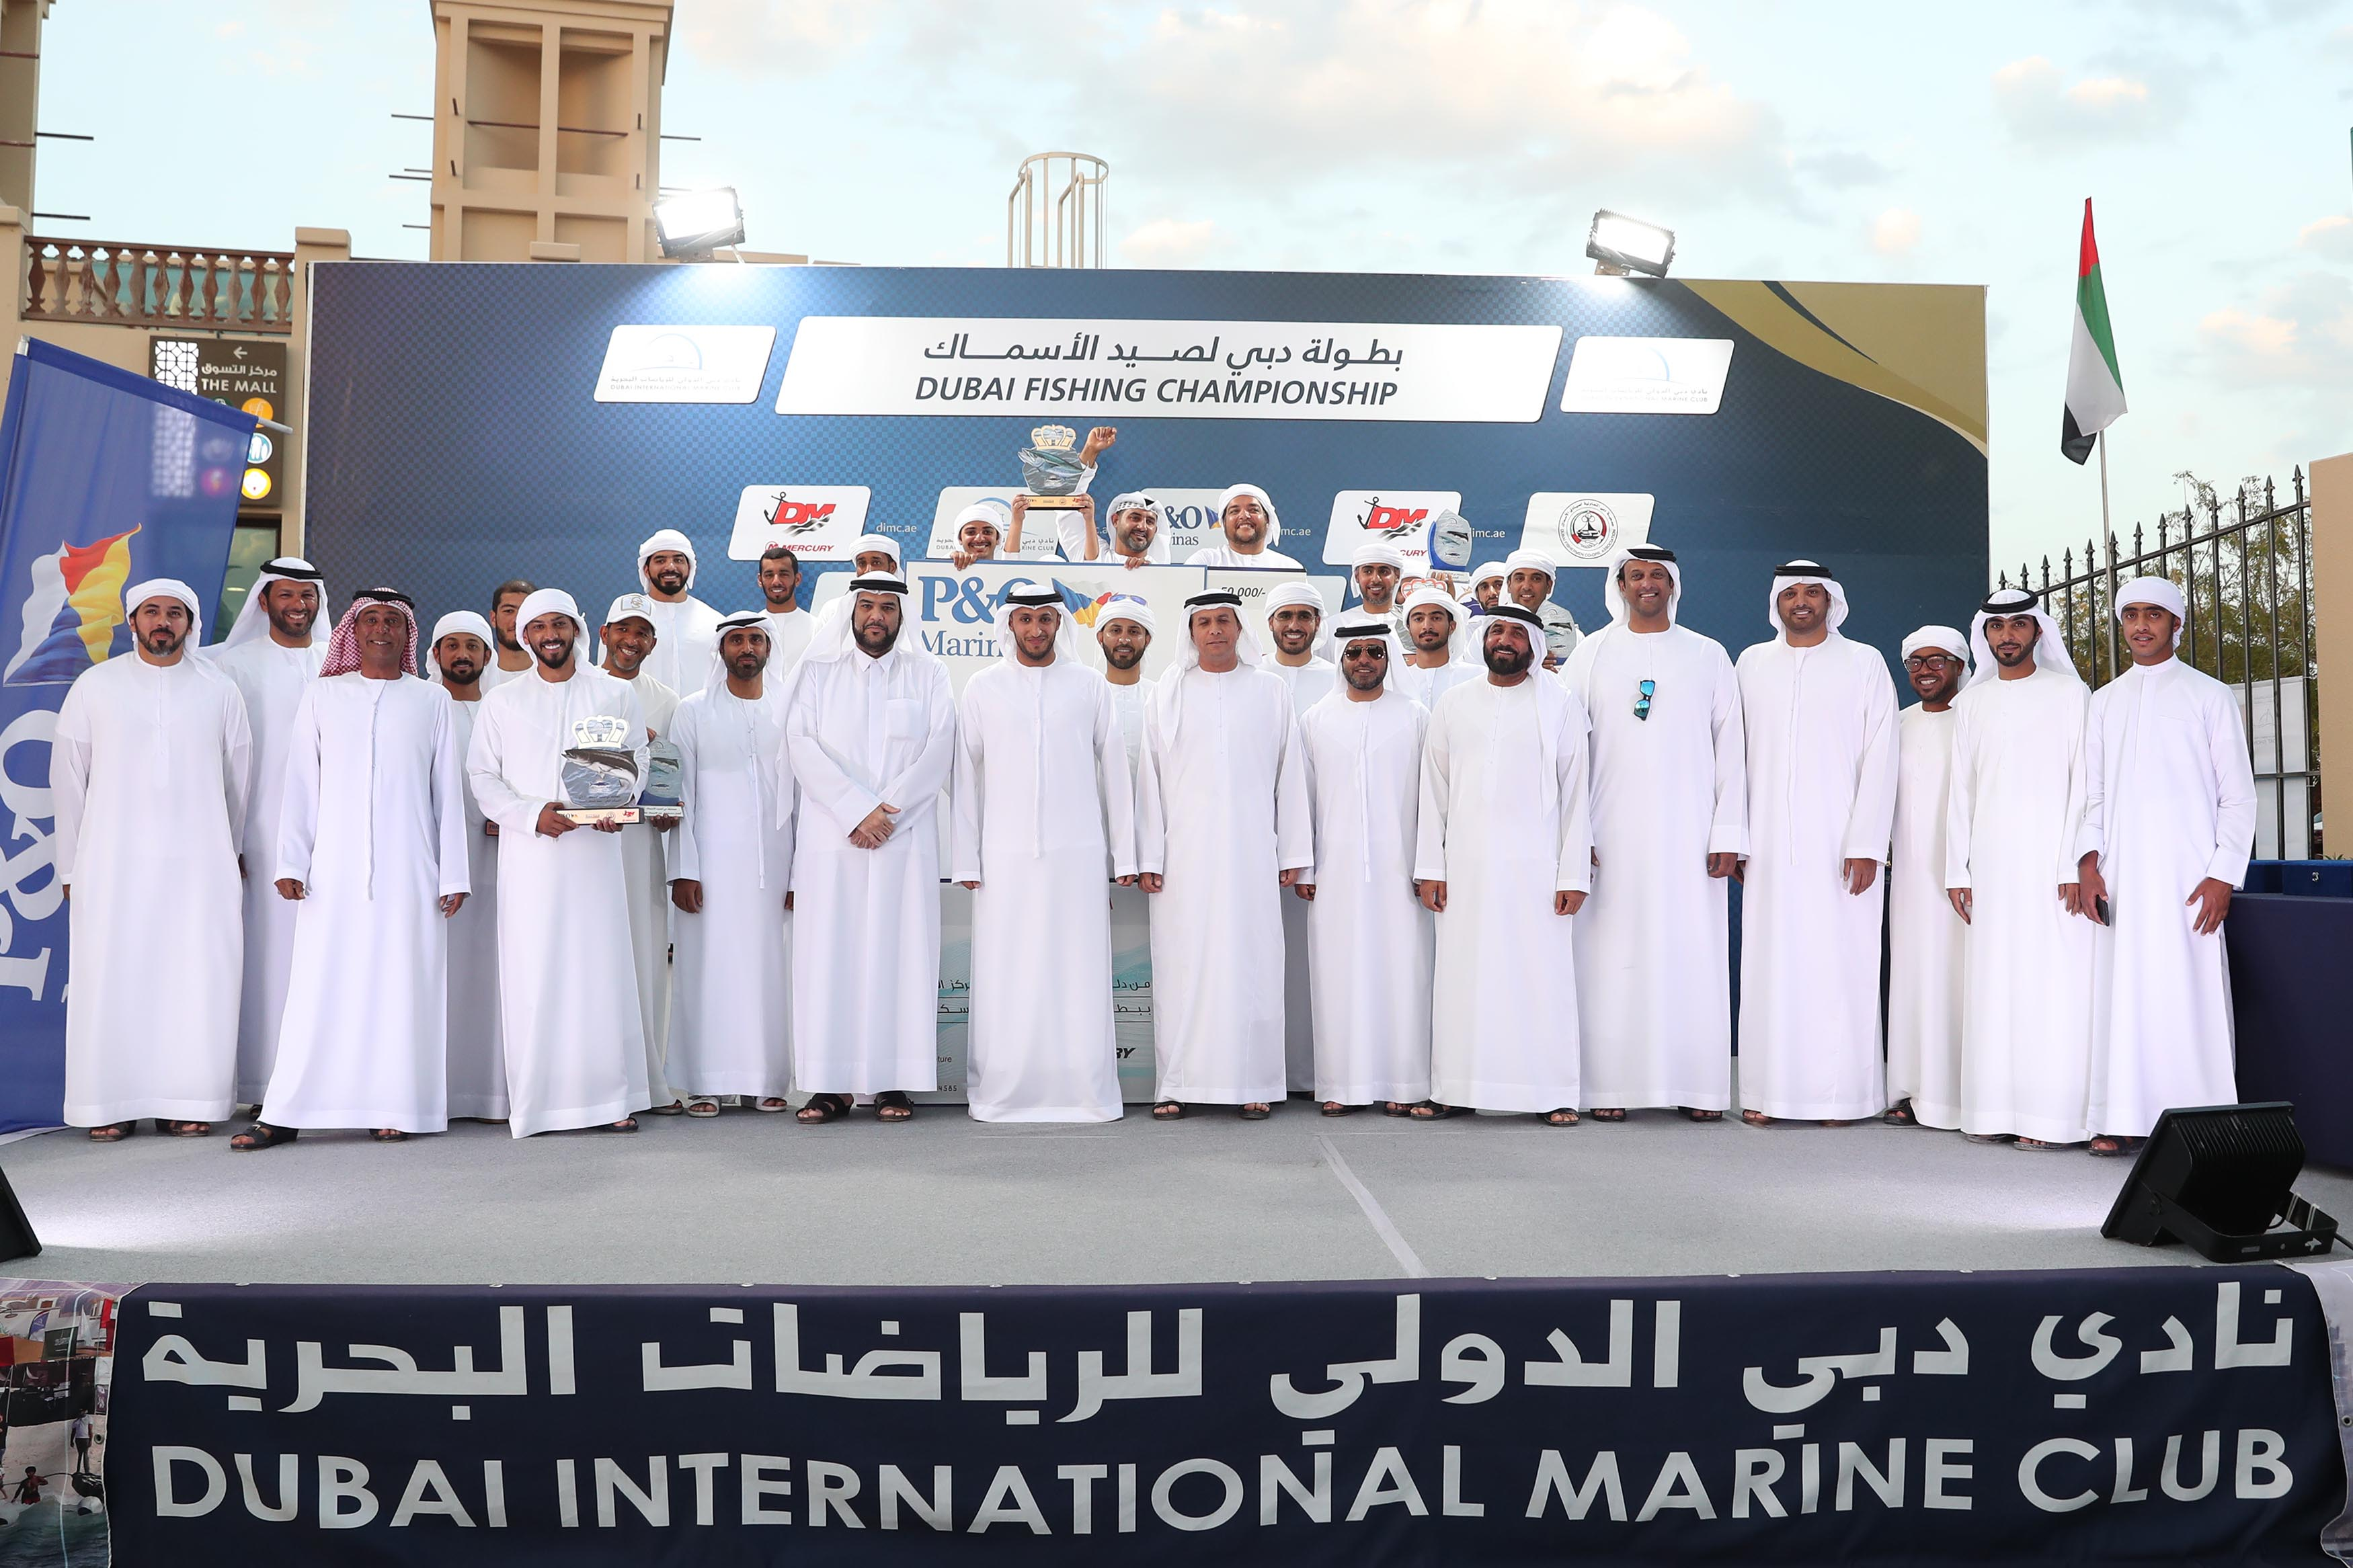 Al Muhairbi wins the Grand Prize for Kingfish in Dubai Fishing Competition